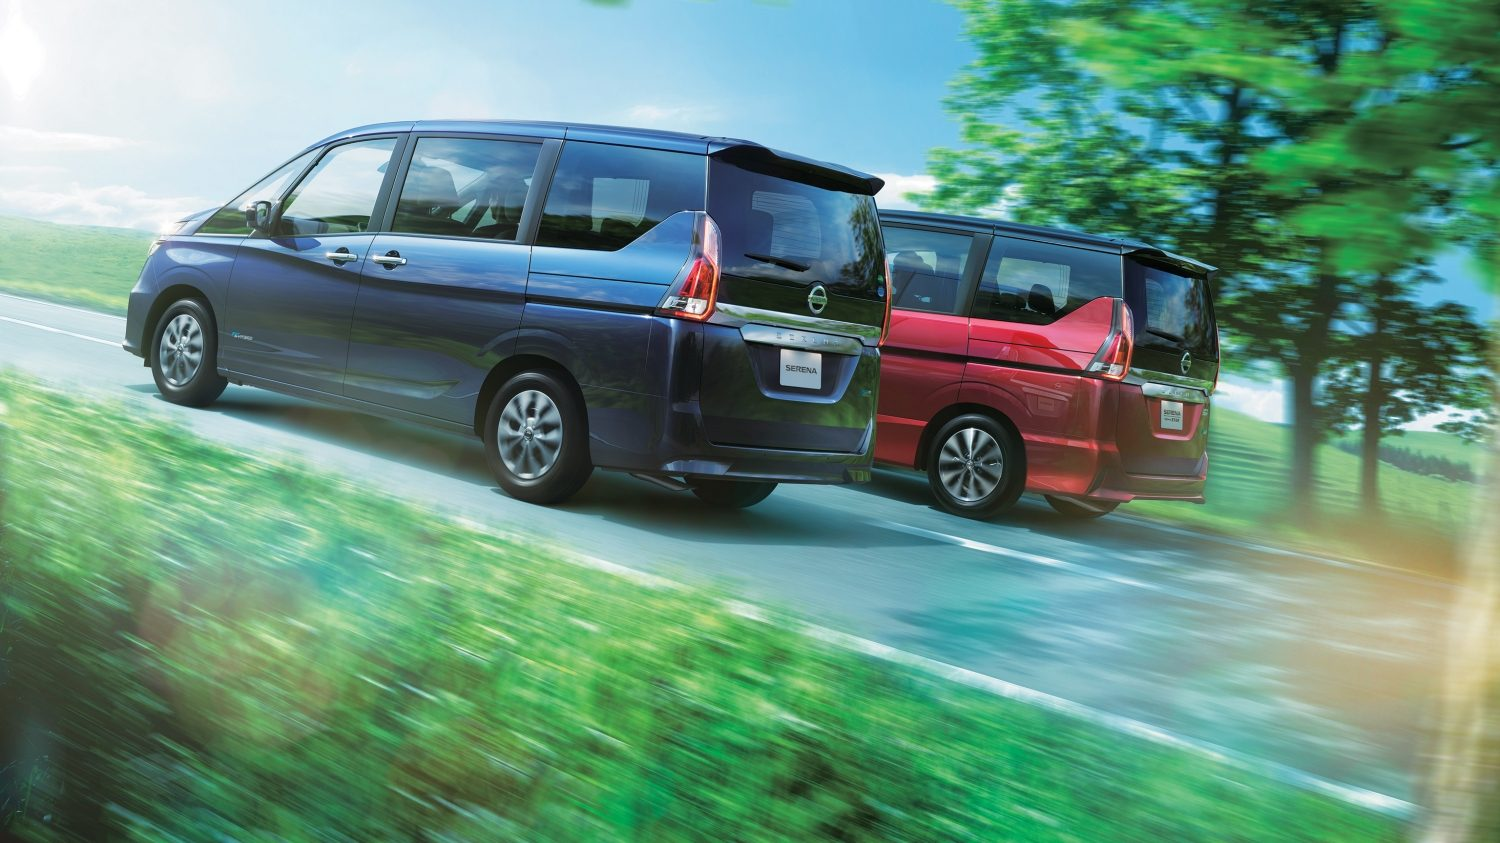 NISSAN SERENA Big Fun Easy